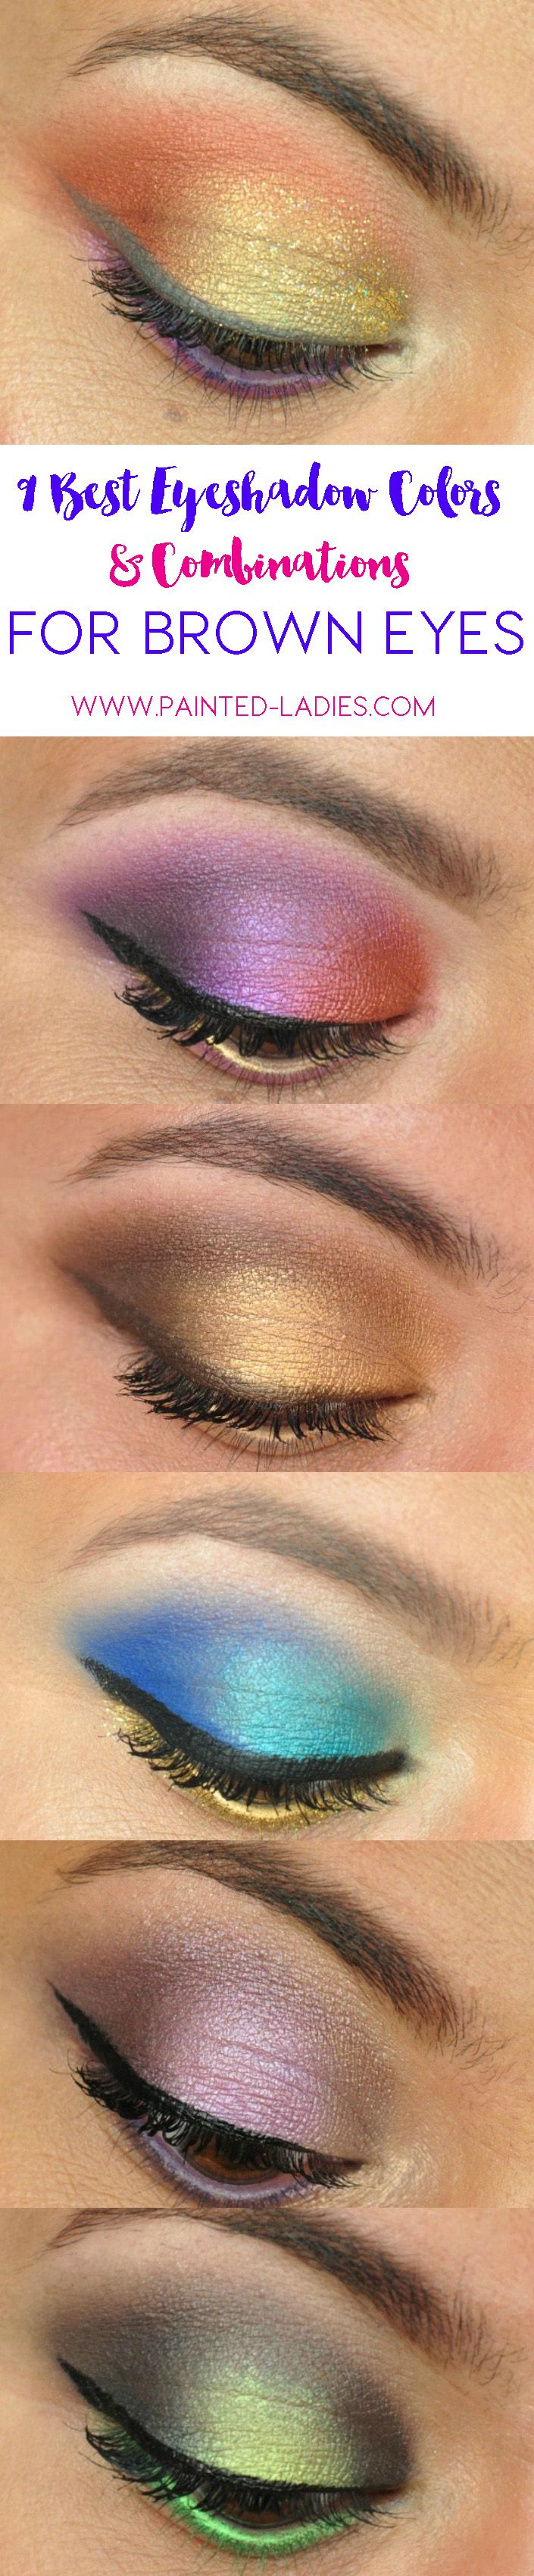 Best Eyeshadow Colors And Combinations For Brown Eyes